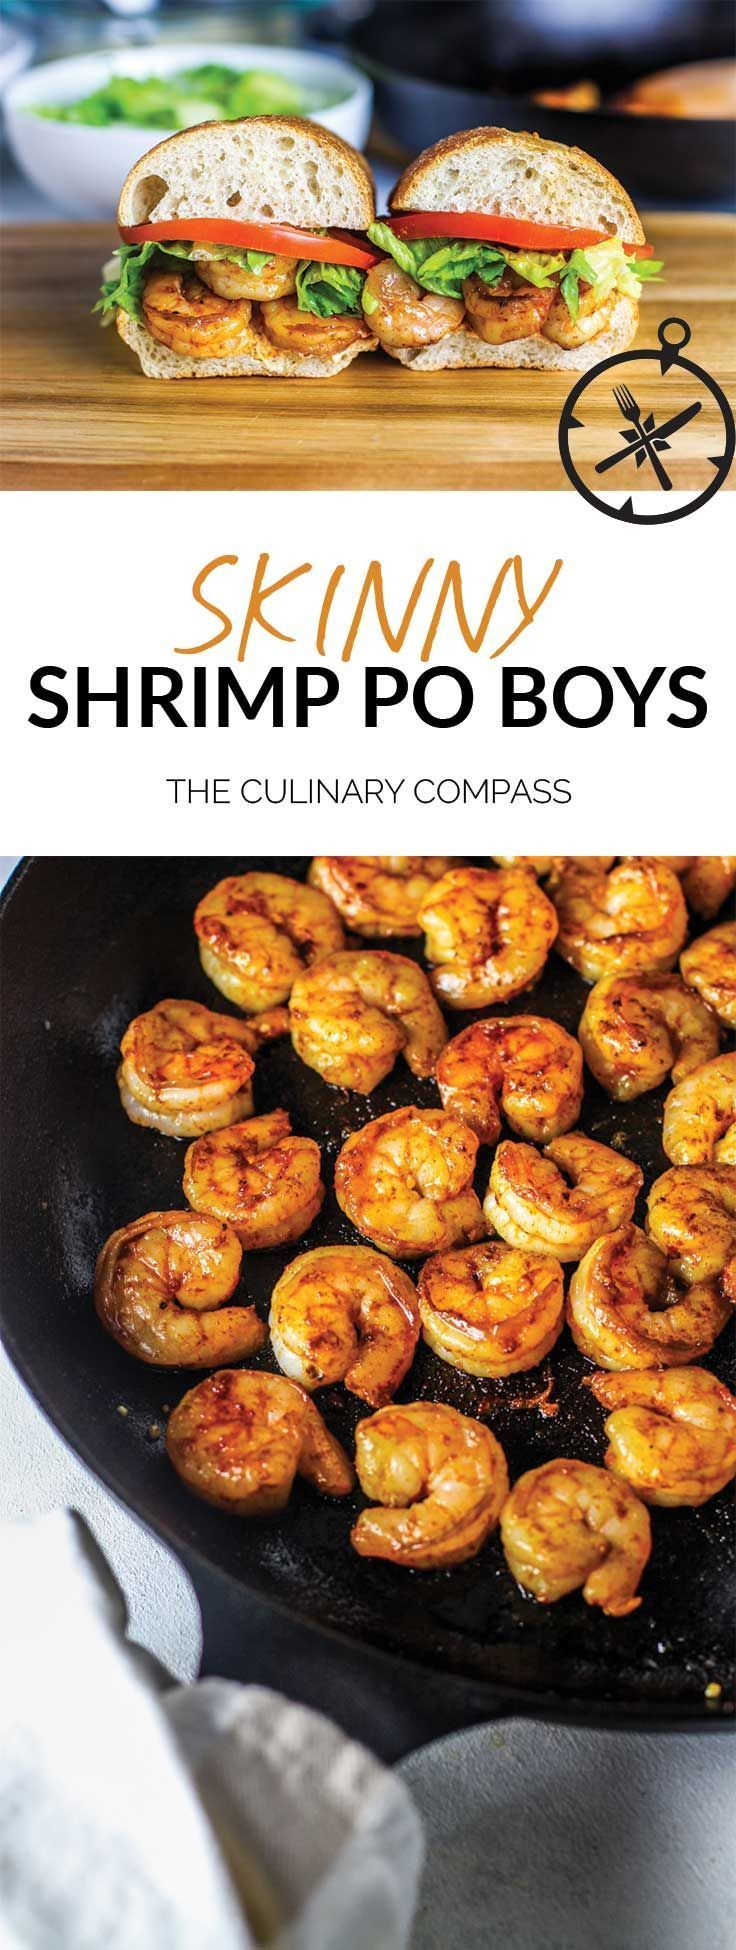 These Skinny Shrimp Po Boys are a lightened up and easy version of the classic! via @culinarycompass